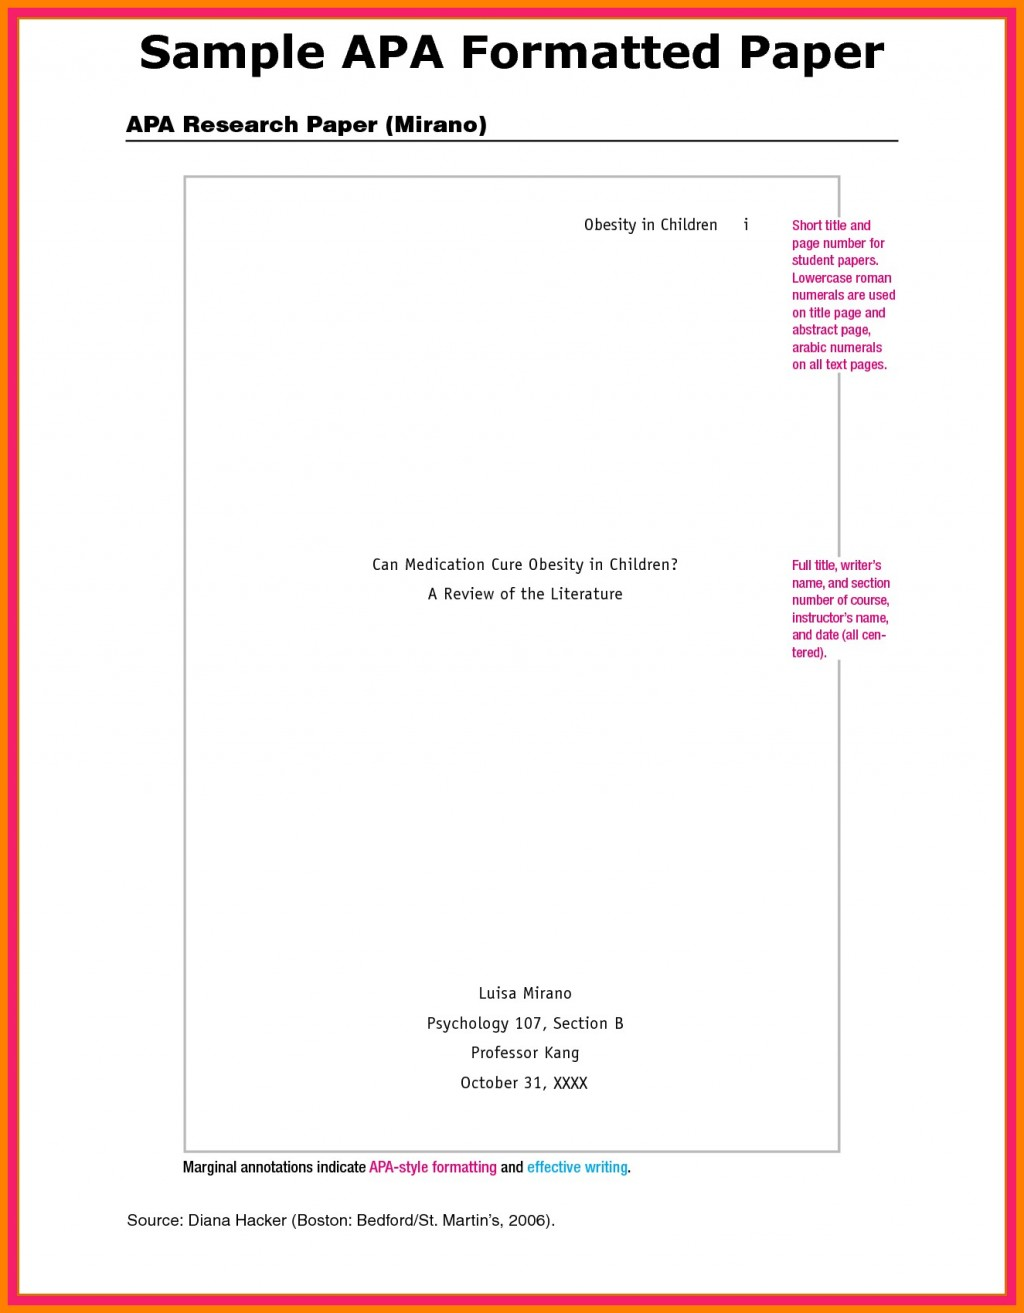 009 Apa Paper Format Appendix Example Research Of Appendices In Stupendous Sample Meaning Large